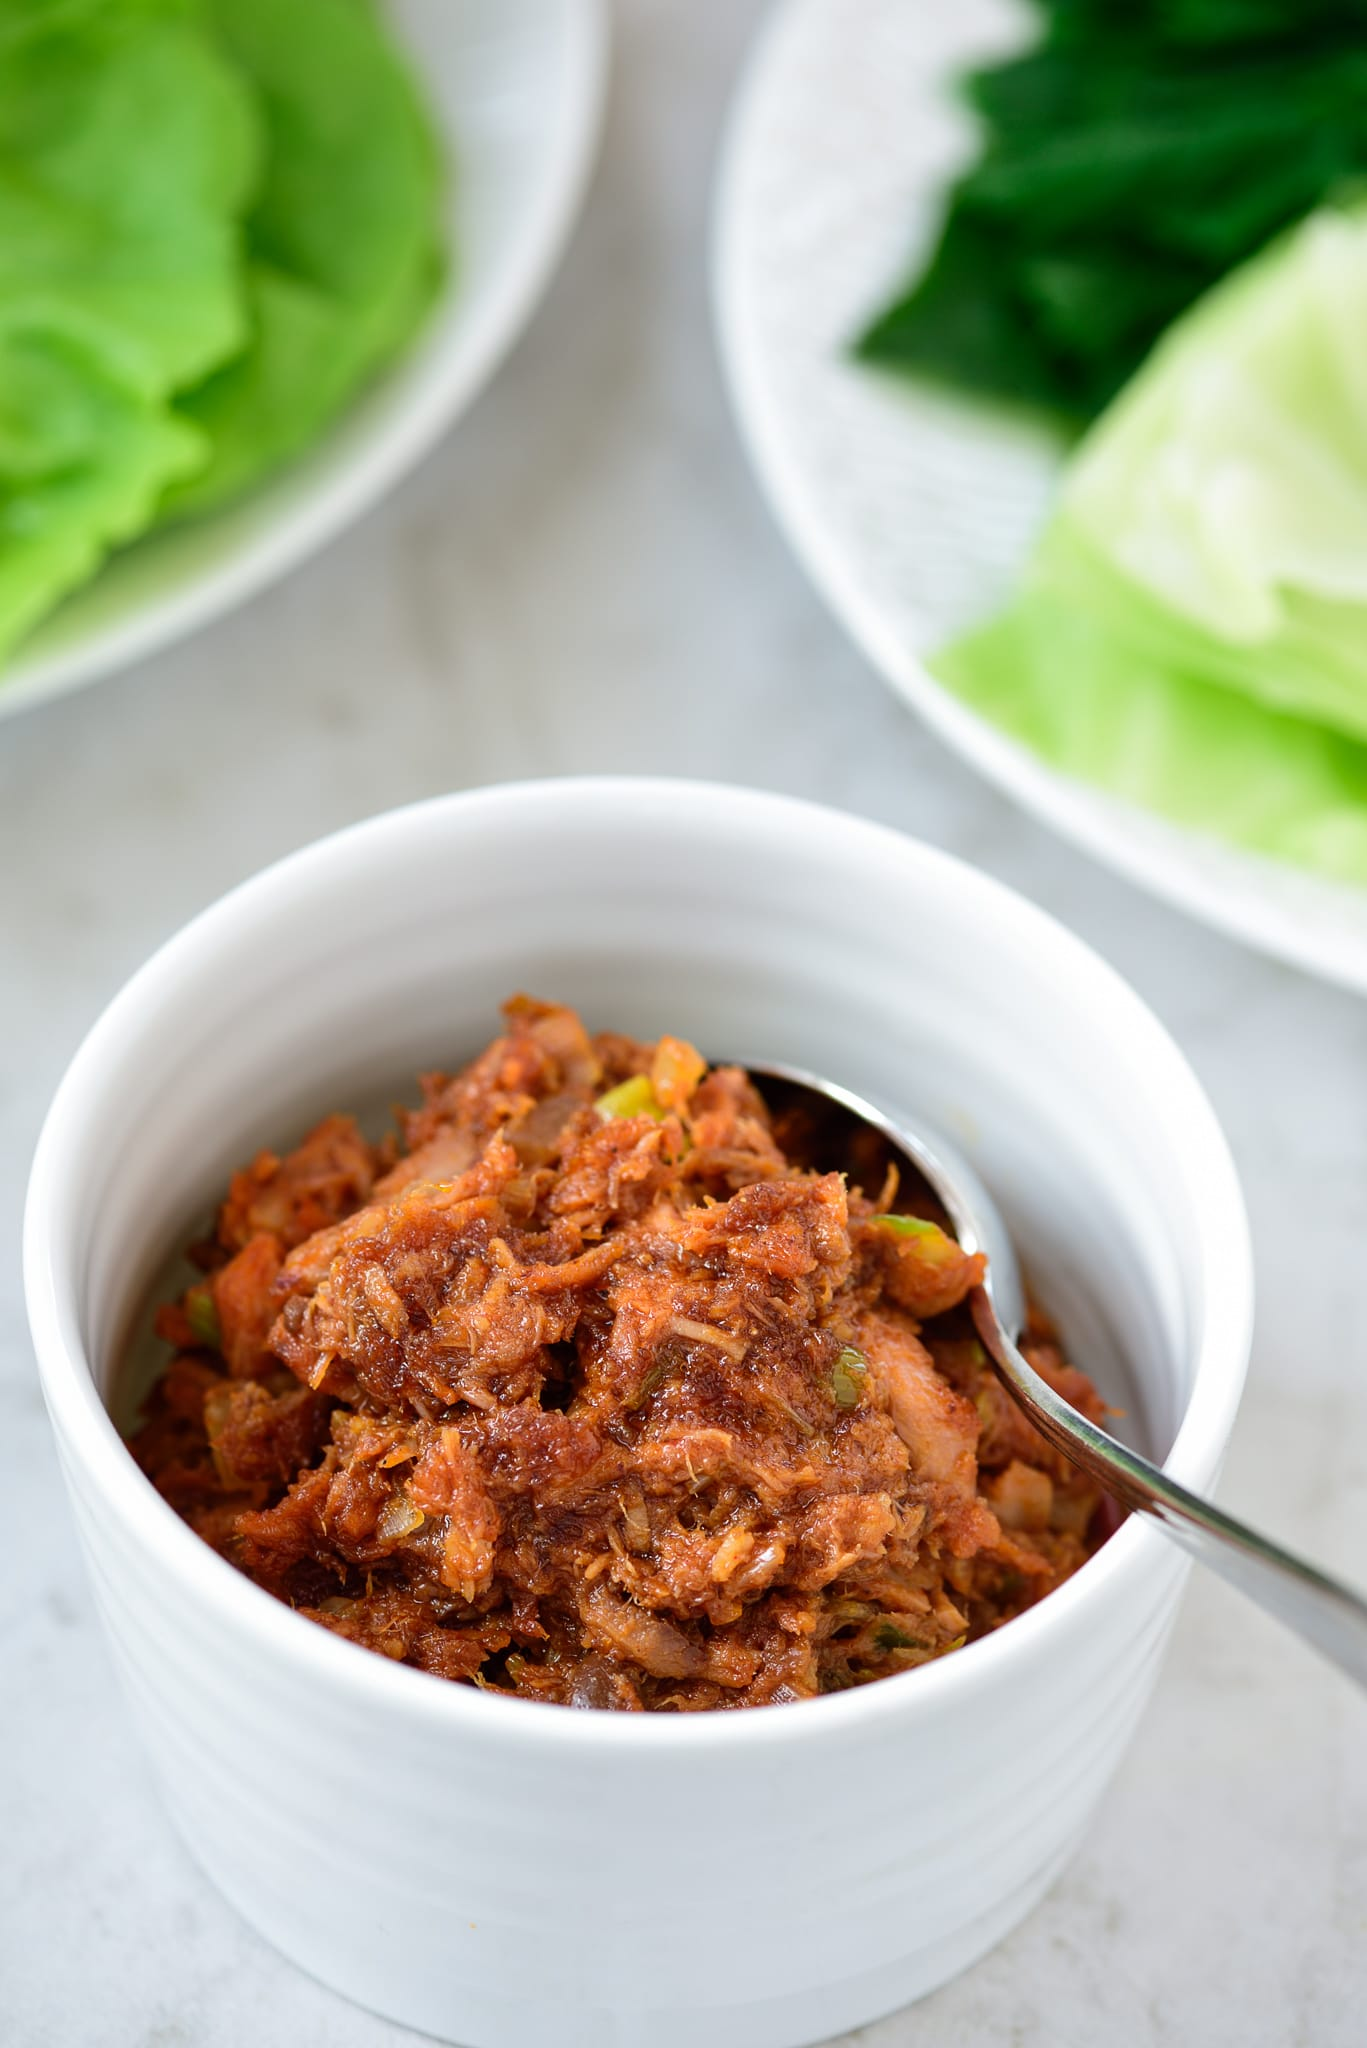 DSC1831 01 - Ssamjang (Sauce for Korean Lettuce Wraps)